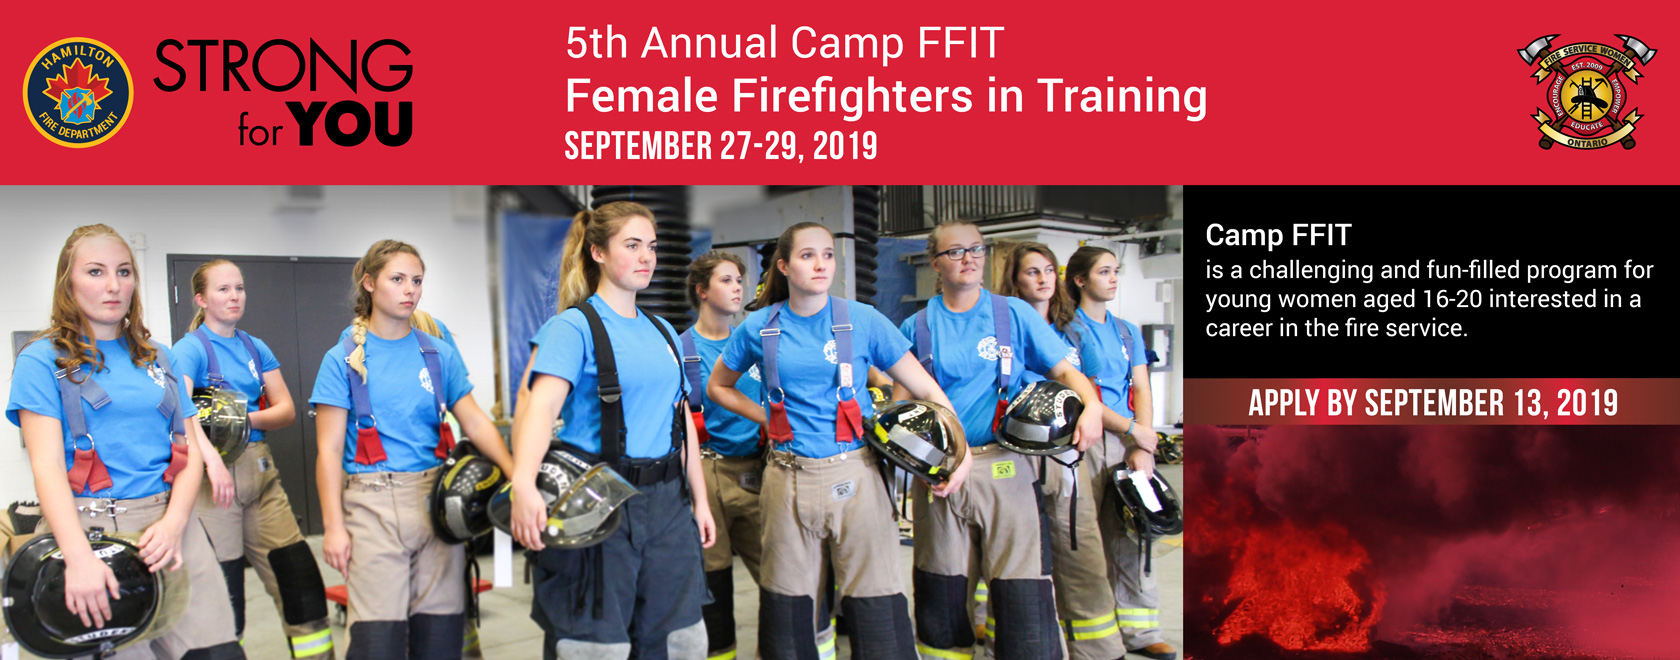 Web Banner for the Camp for Female Firefighters in Training in Hamilton